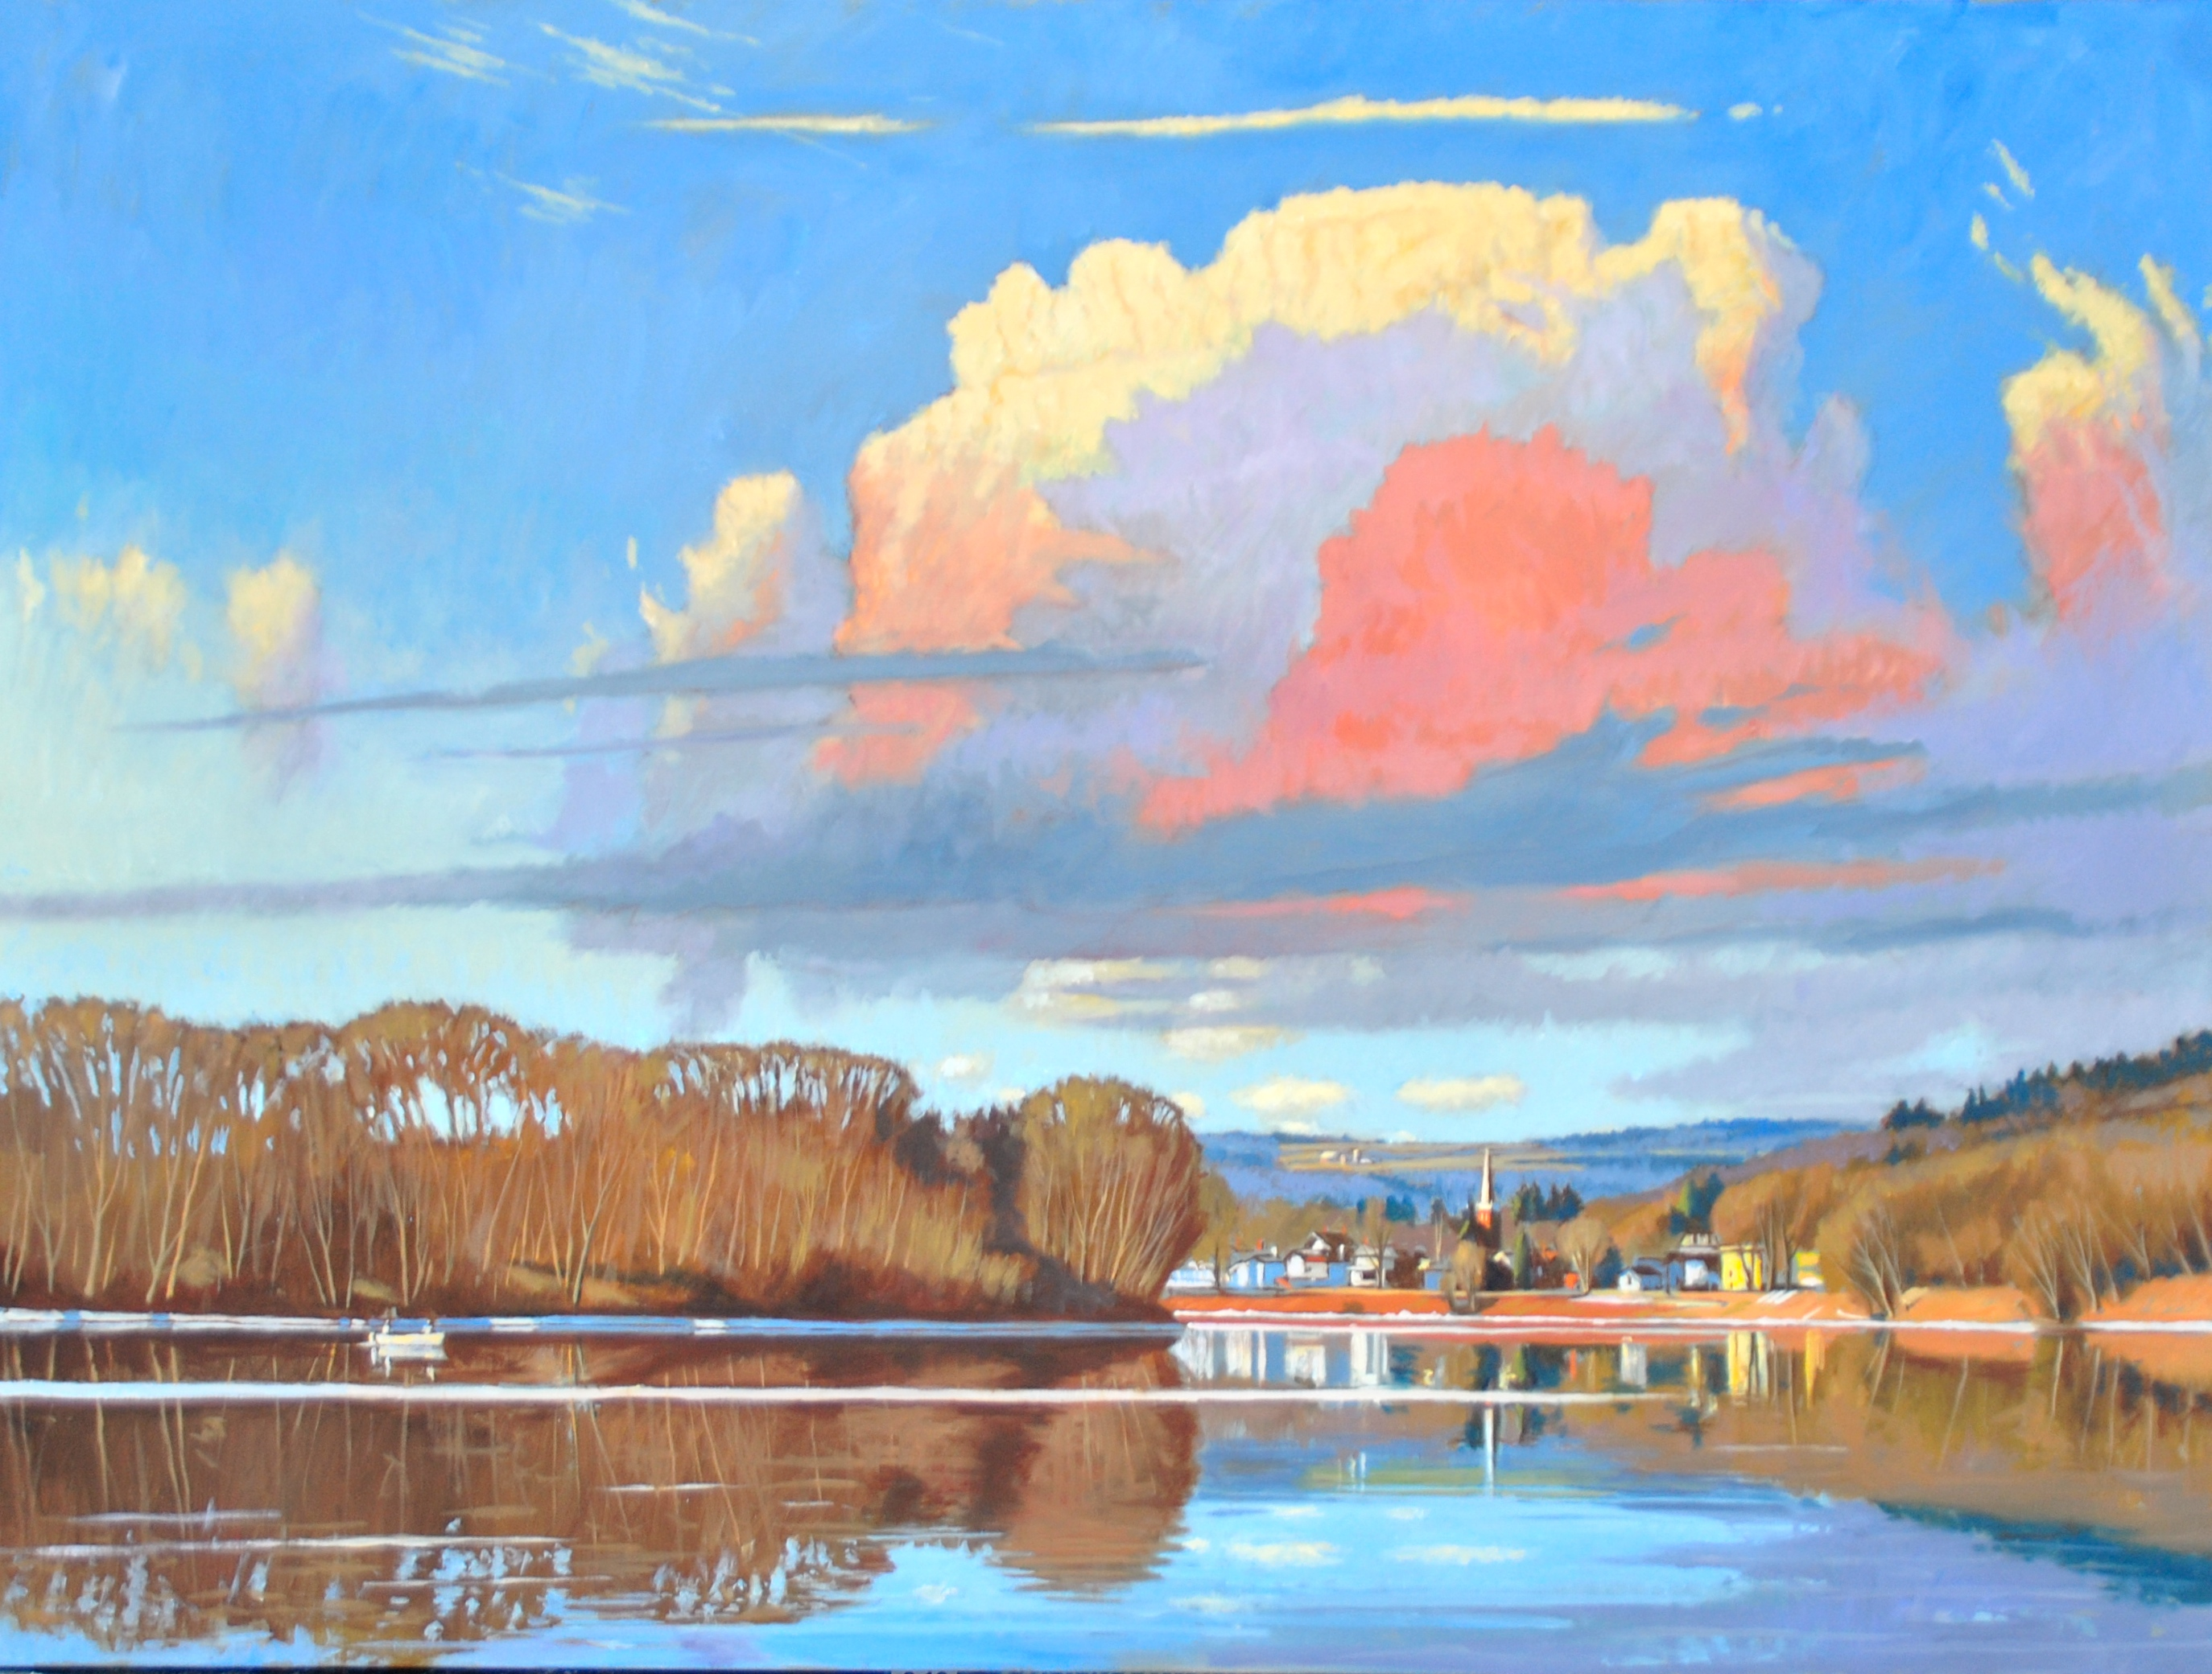 Susquehanna at Owego, Winter Clouds - Copy